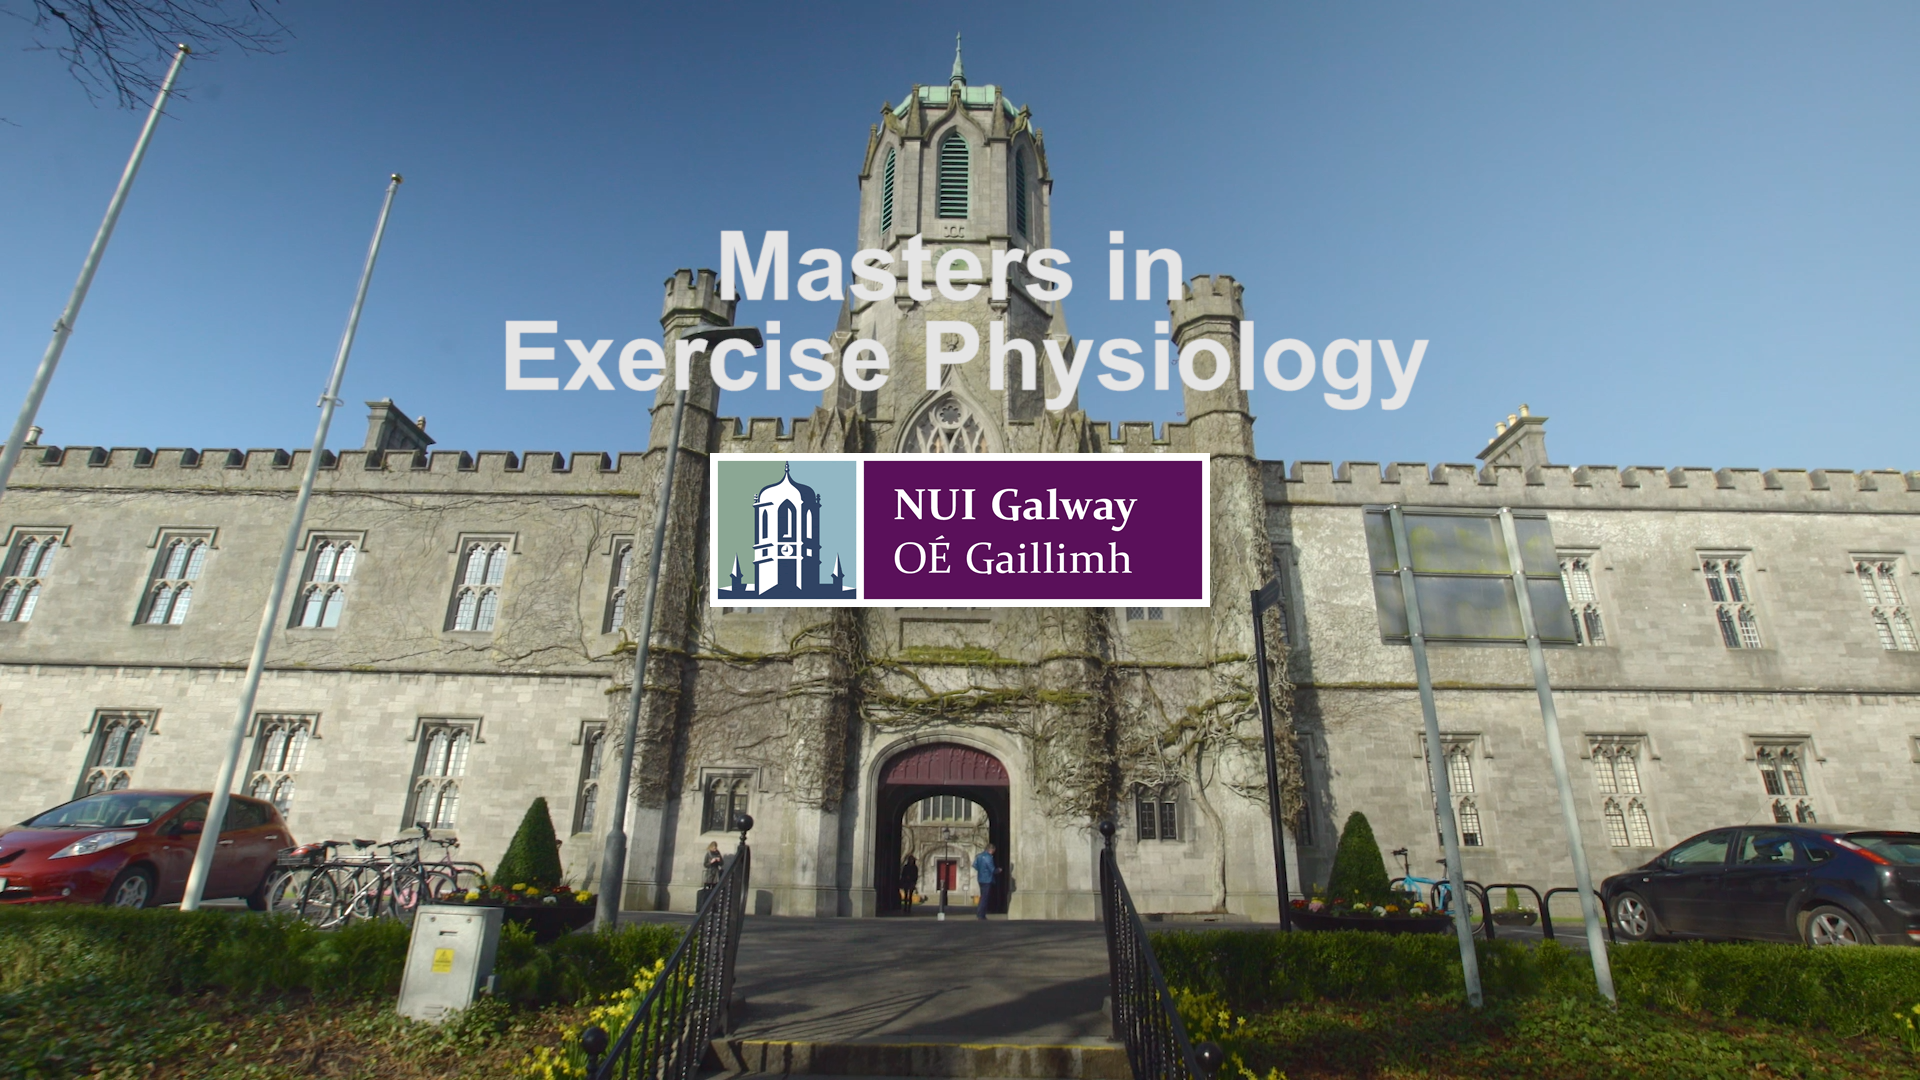 Masters in Exercise Physiology - Student Testimonials